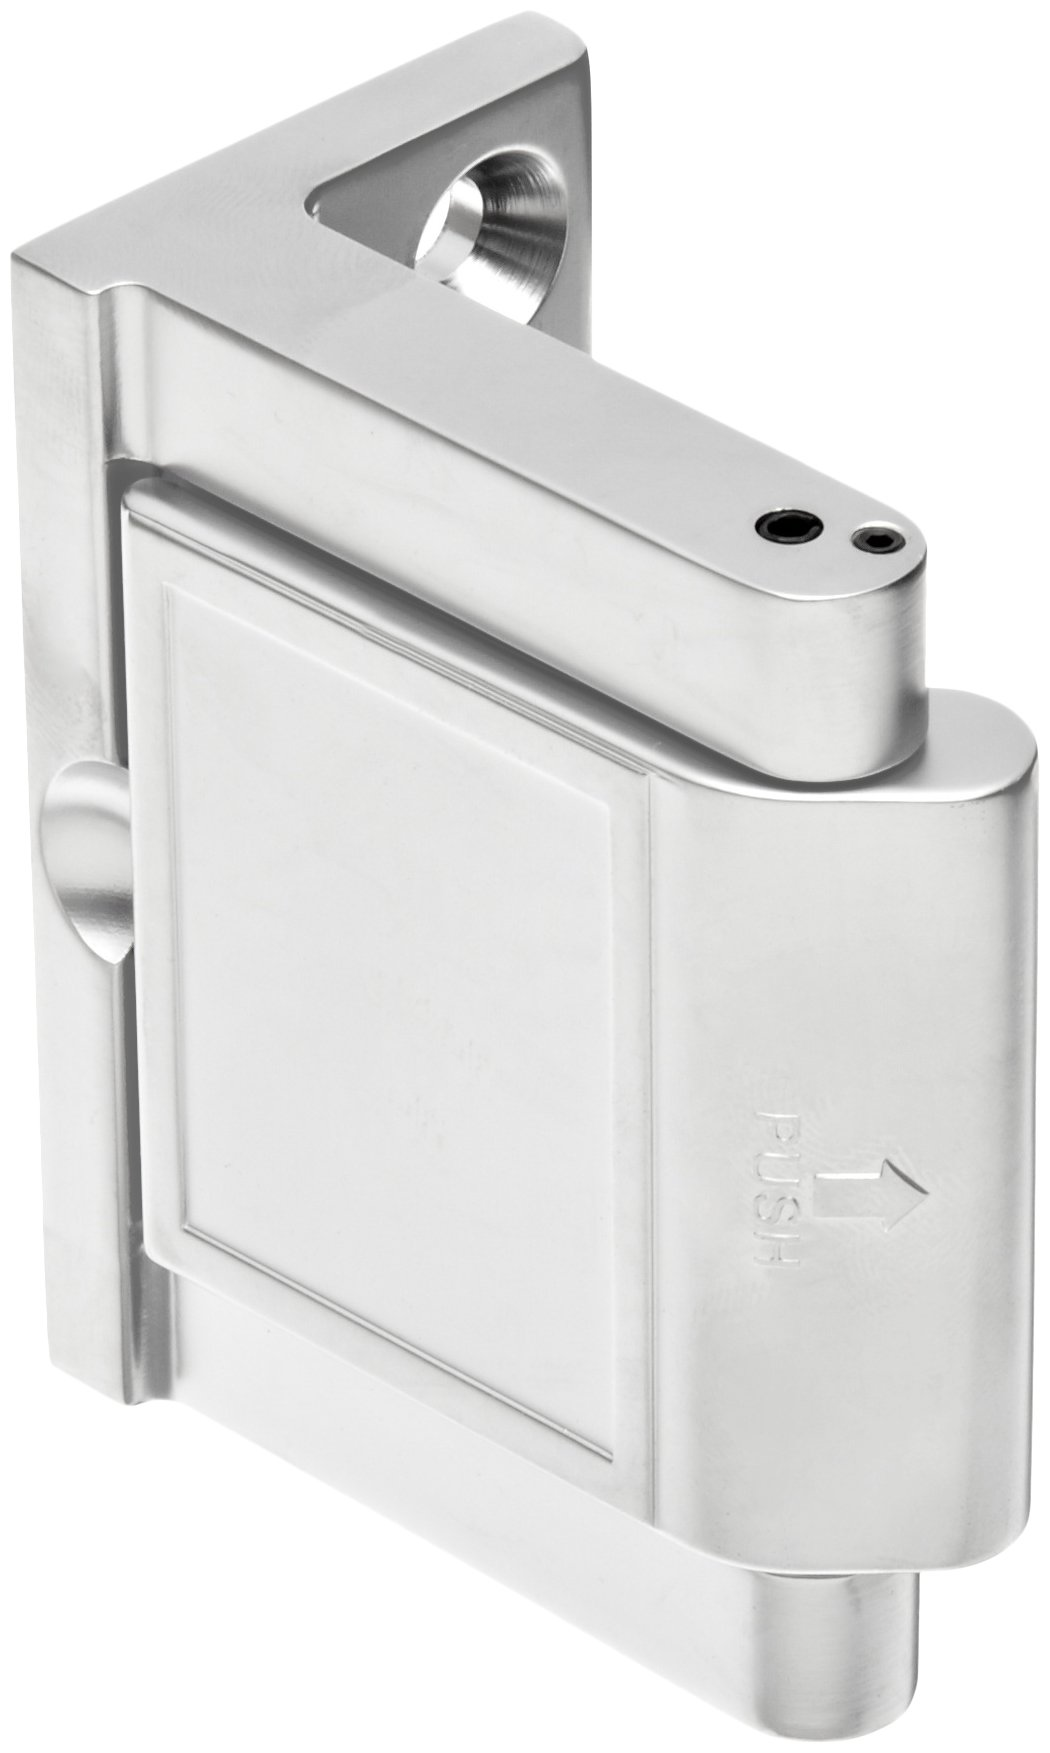 Pemko Privacy Door Latch, Polished Chrome finish, 1-1/2'' x 2-3/4'' Width, 2-3/16'' Height